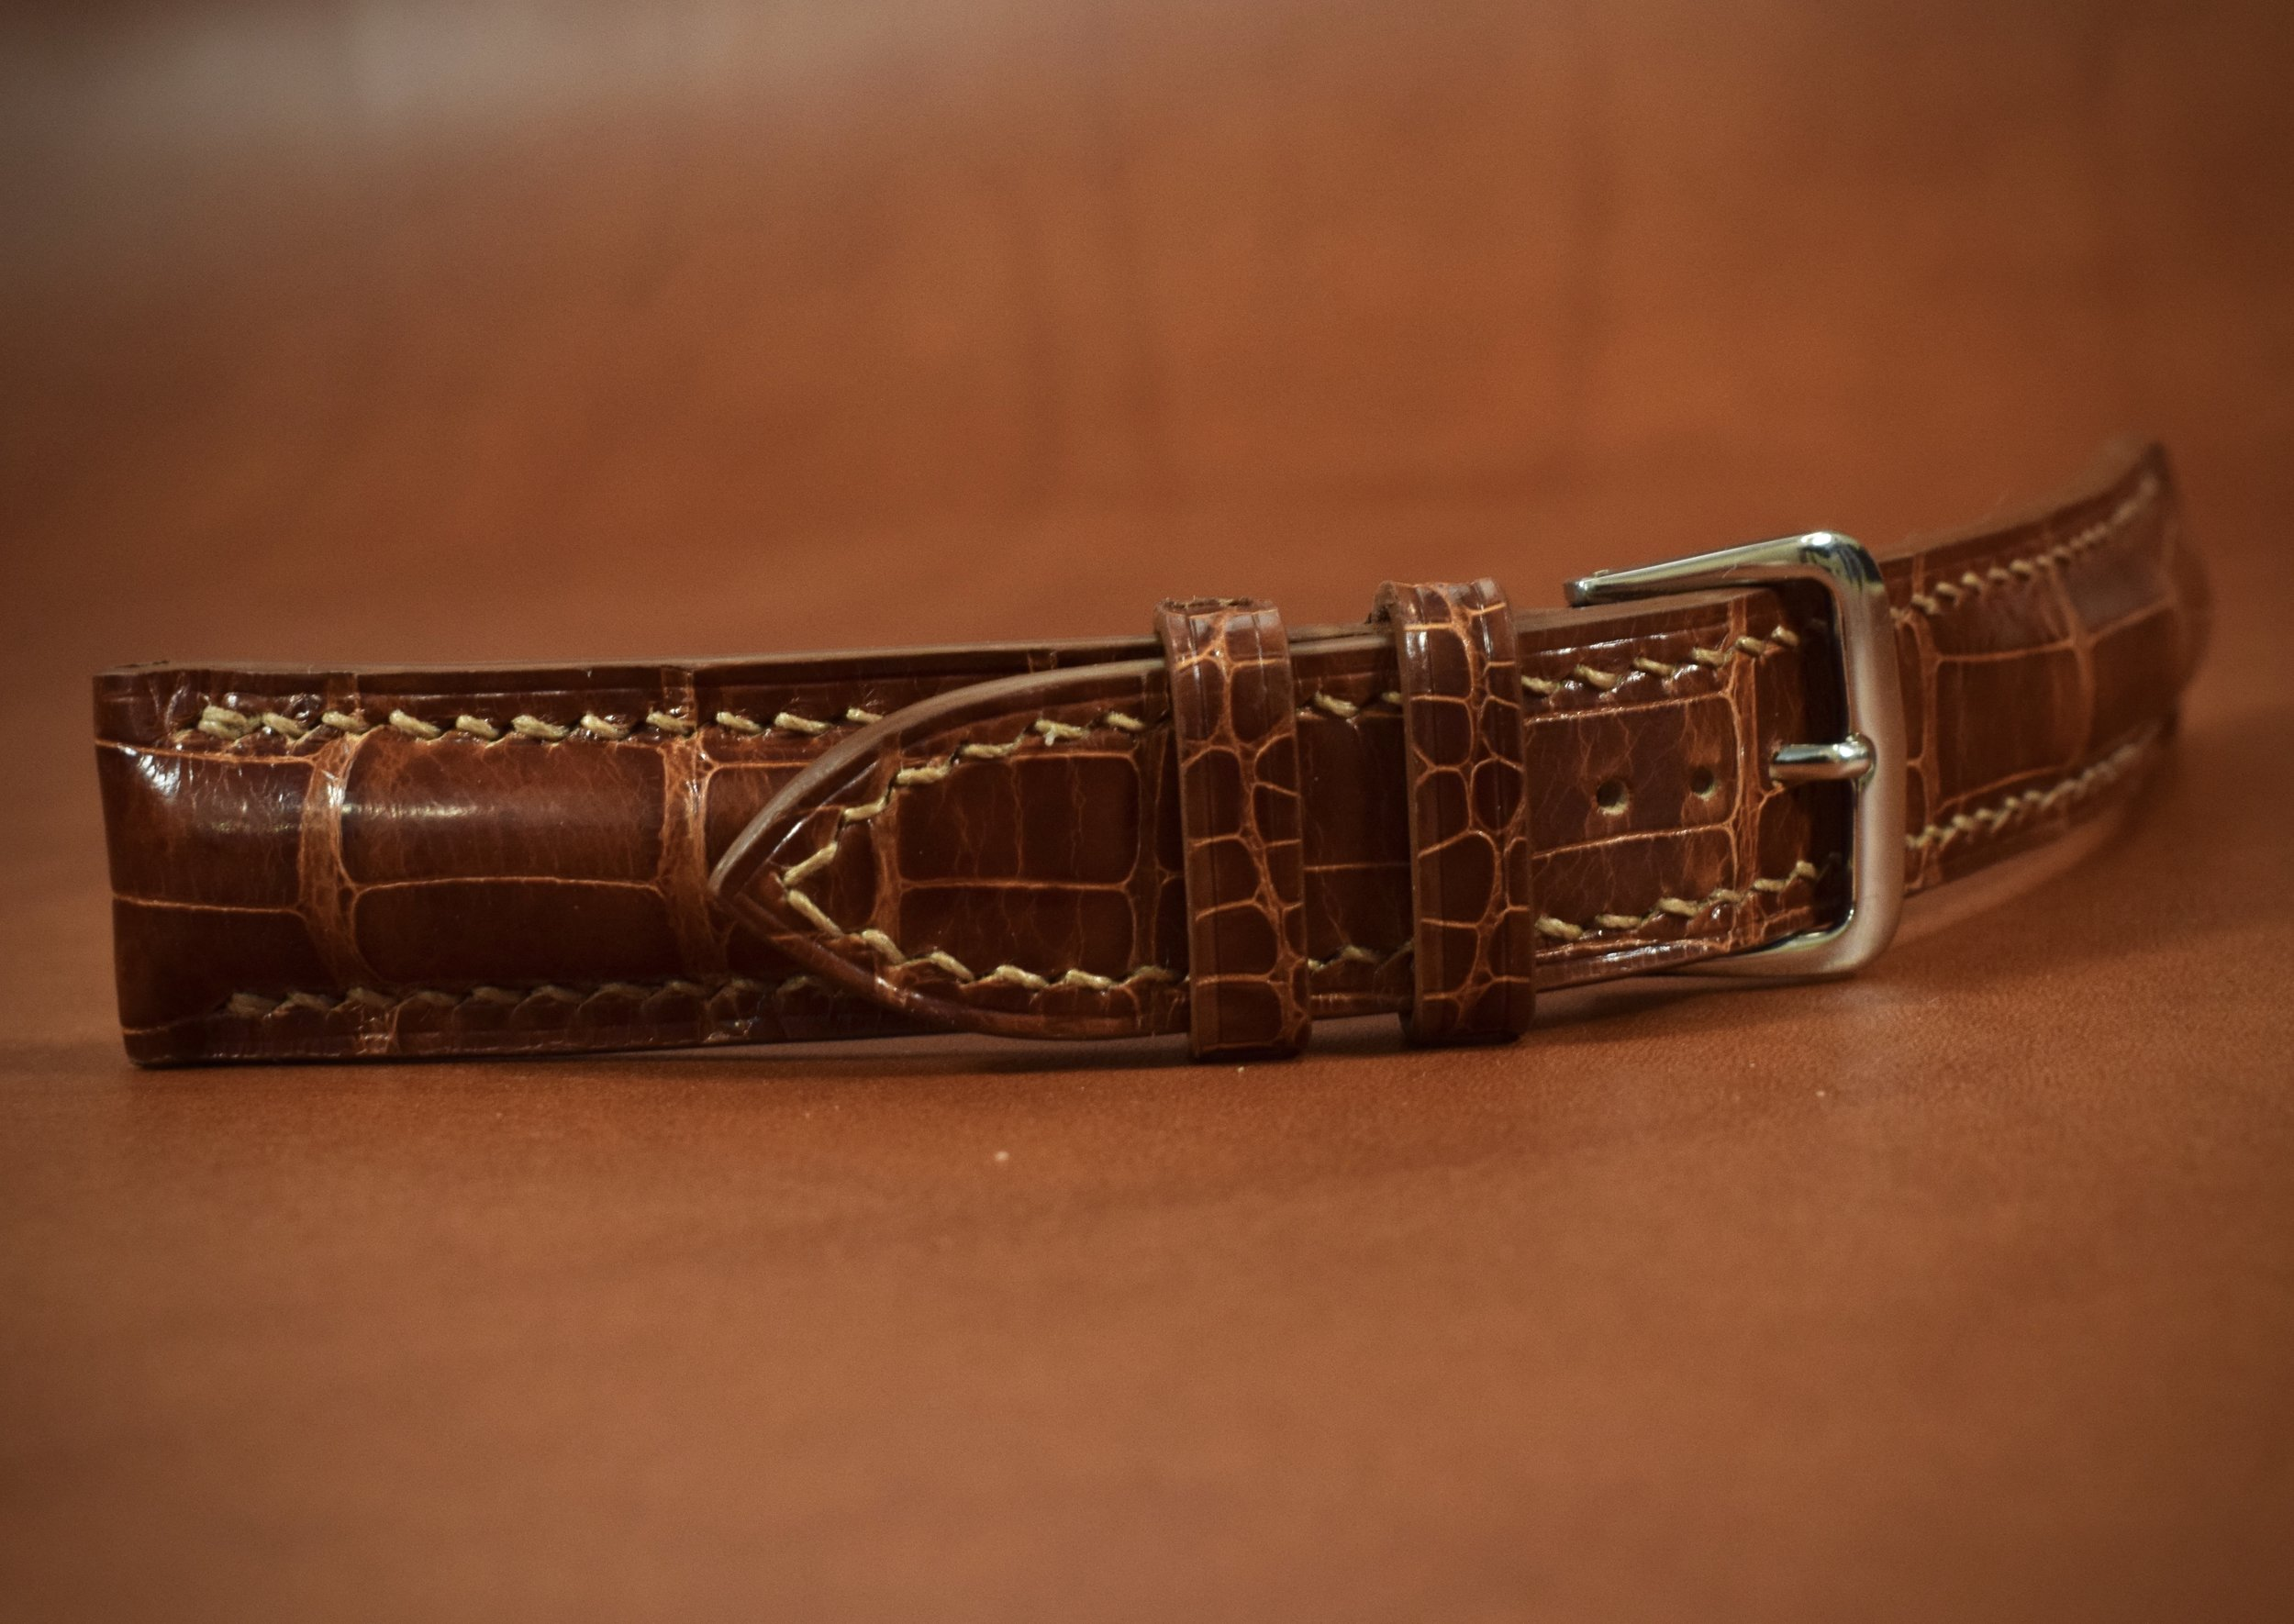 Finally, the buckle is attached and the holes are punched in the strap so that it makes the perfect fit for the customer.